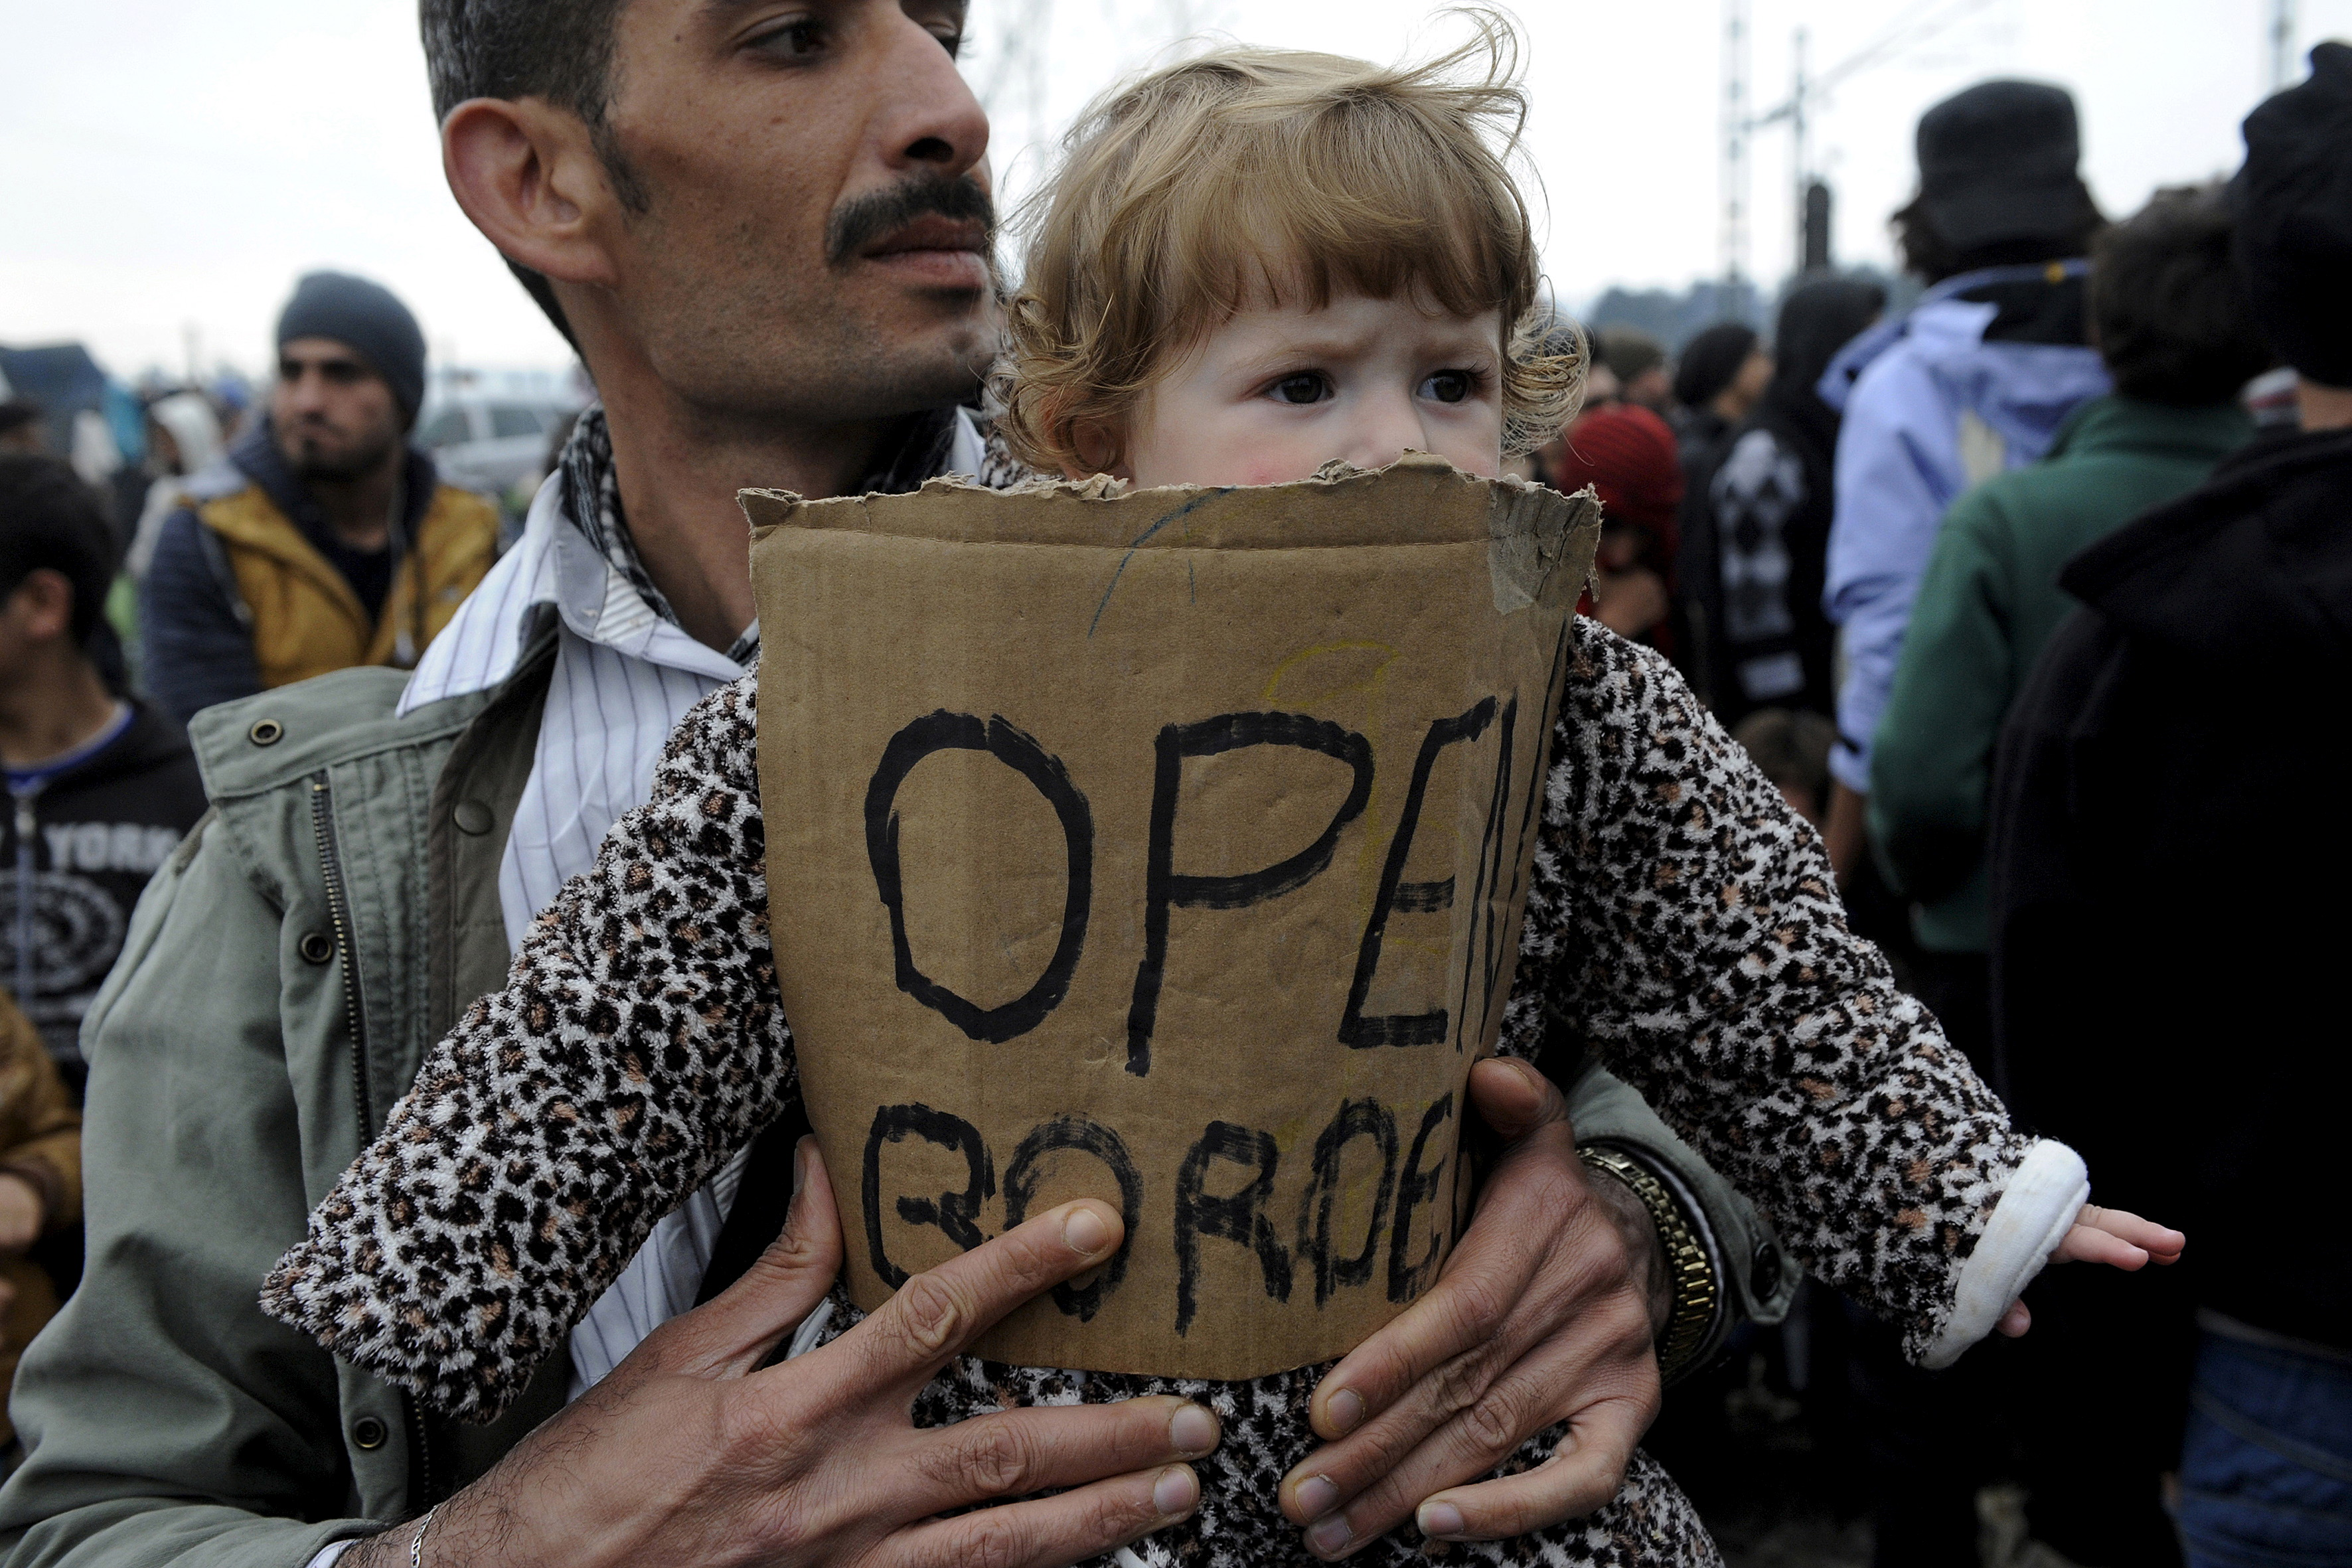 A stranded refugee holds a child during a protest at the Greek-Macedonian border, as they wait for the border crossing to reopen, near the Greek village of Idomeni on Feb. 28, 2016